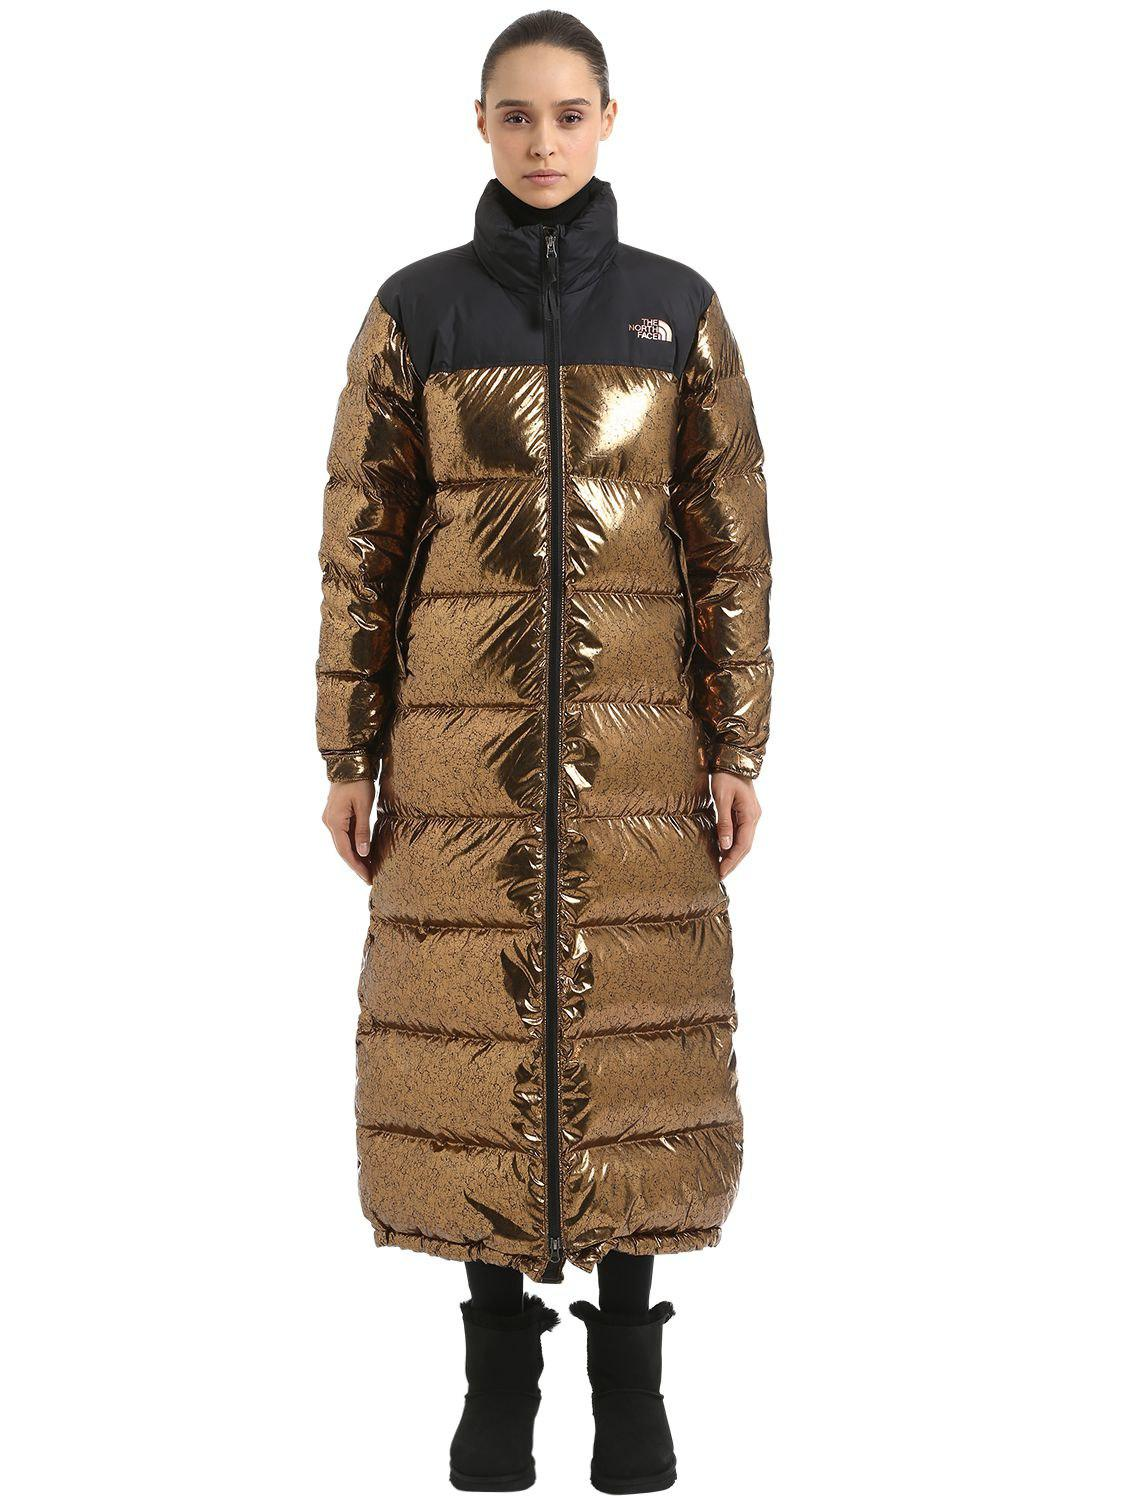 ee91bf79c The North Face Nuptse Duster Long Down Jacket in Metallic - Lyst